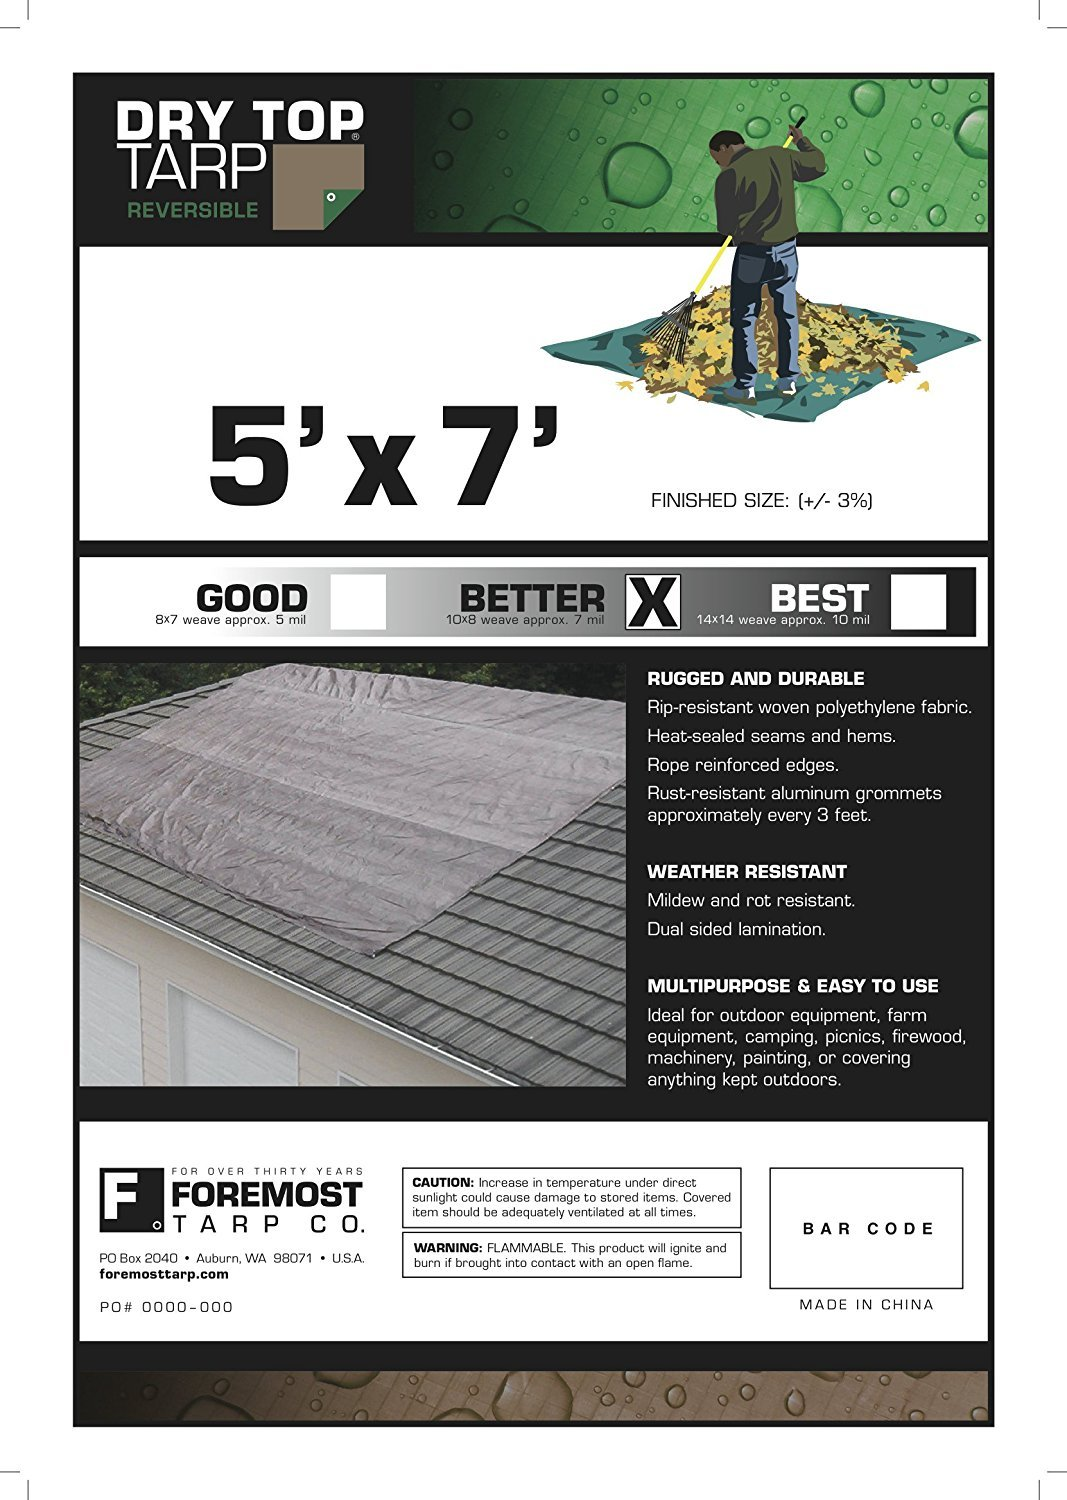 Foremost Dry Top 10057 5 x 7 Brown//Green Reversible Full Size 7-mil Poly Tarp Pack of 2 MKP